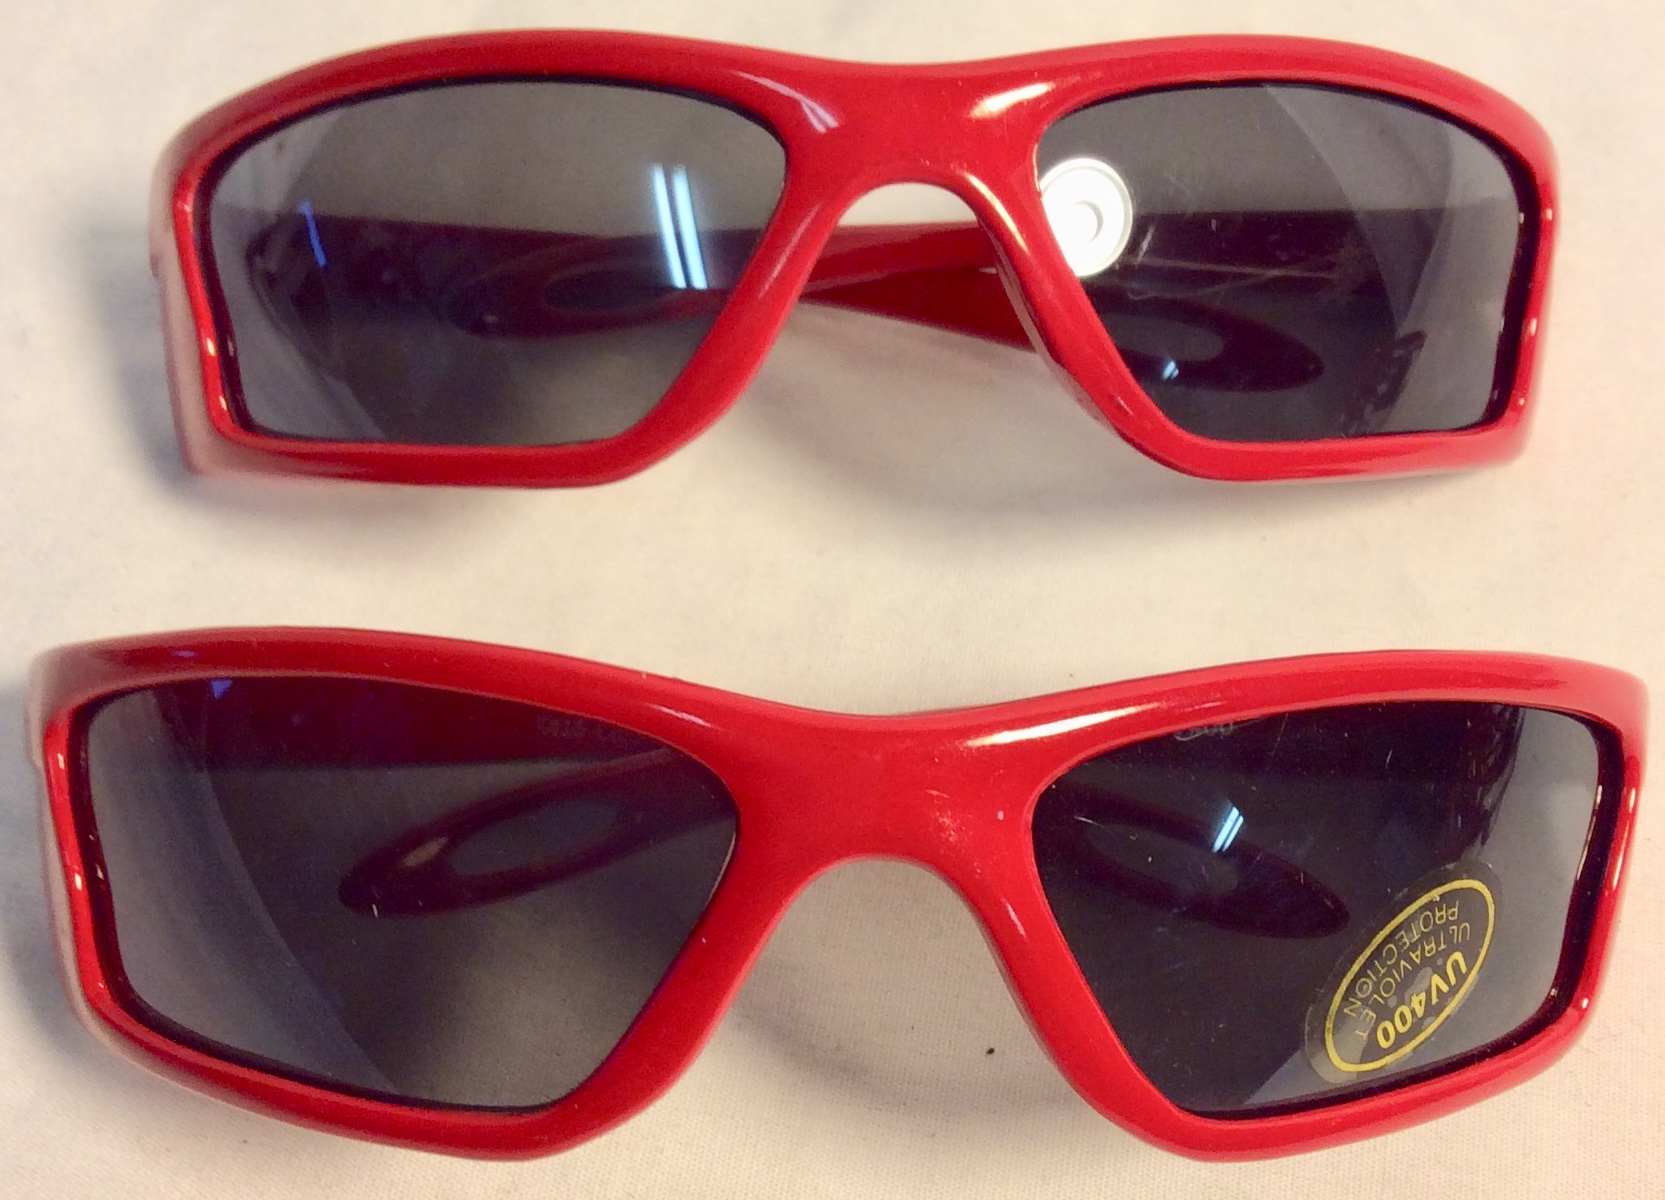 Kids sunglasses with red plastic frame